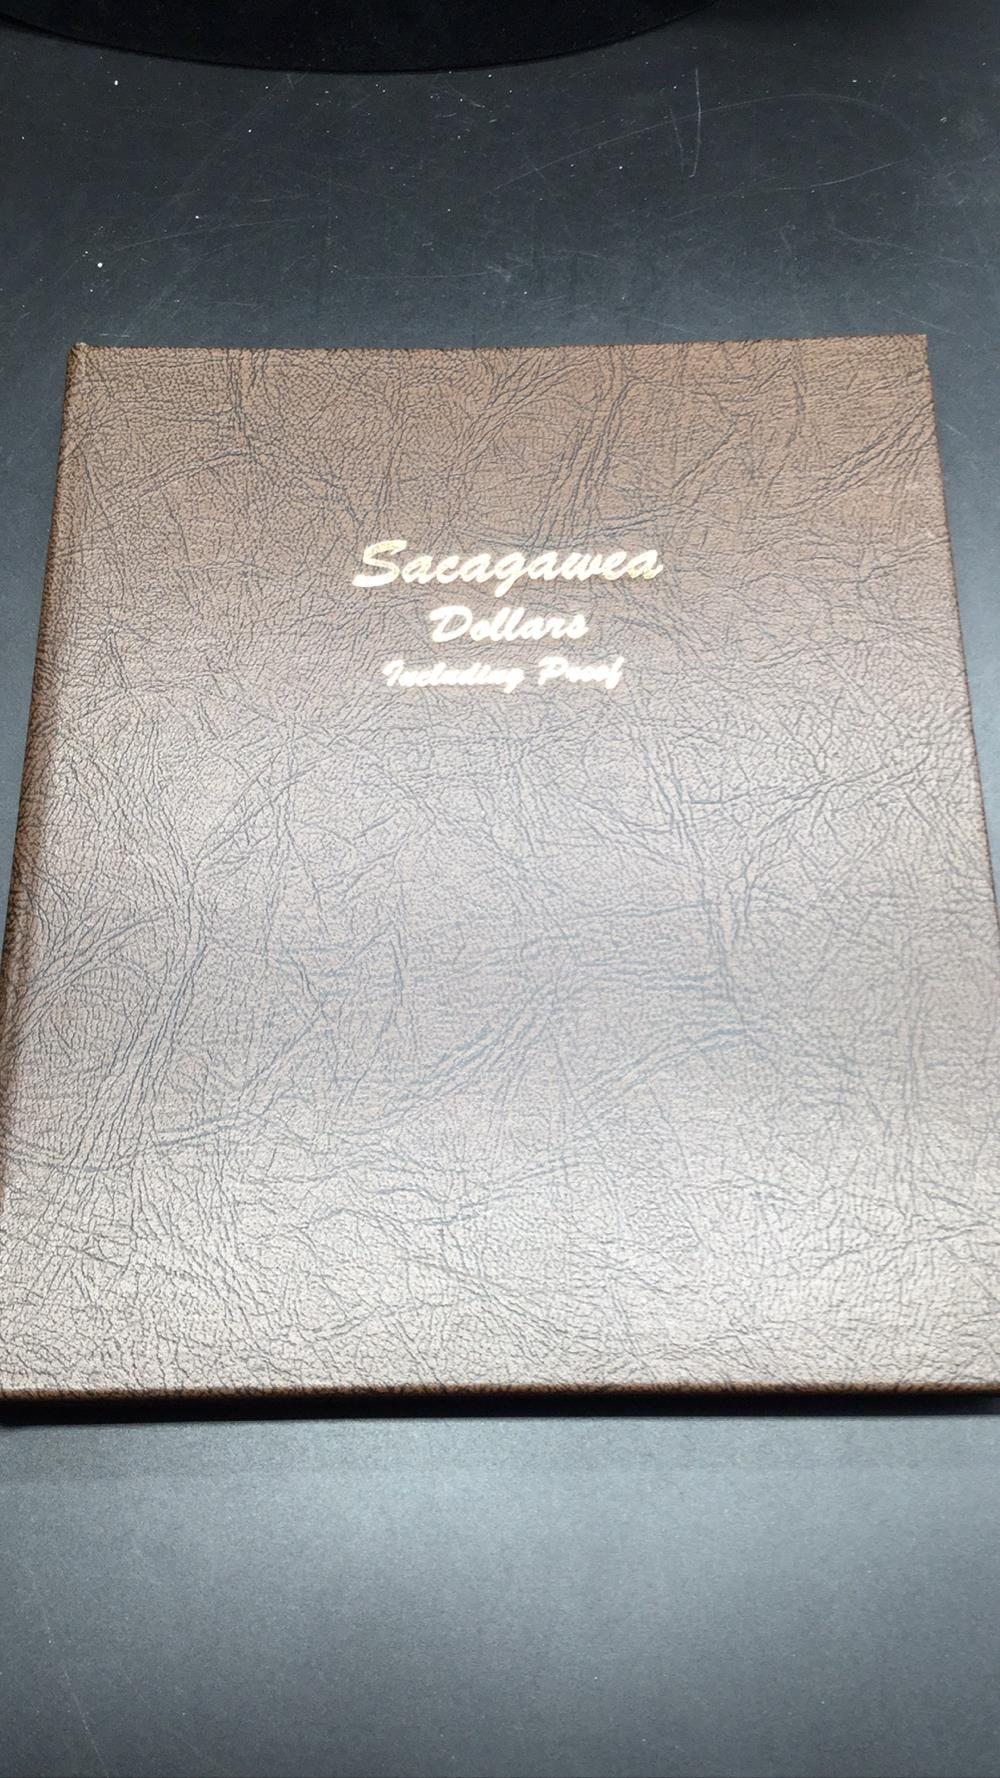 Sacajawea dollars including proof book